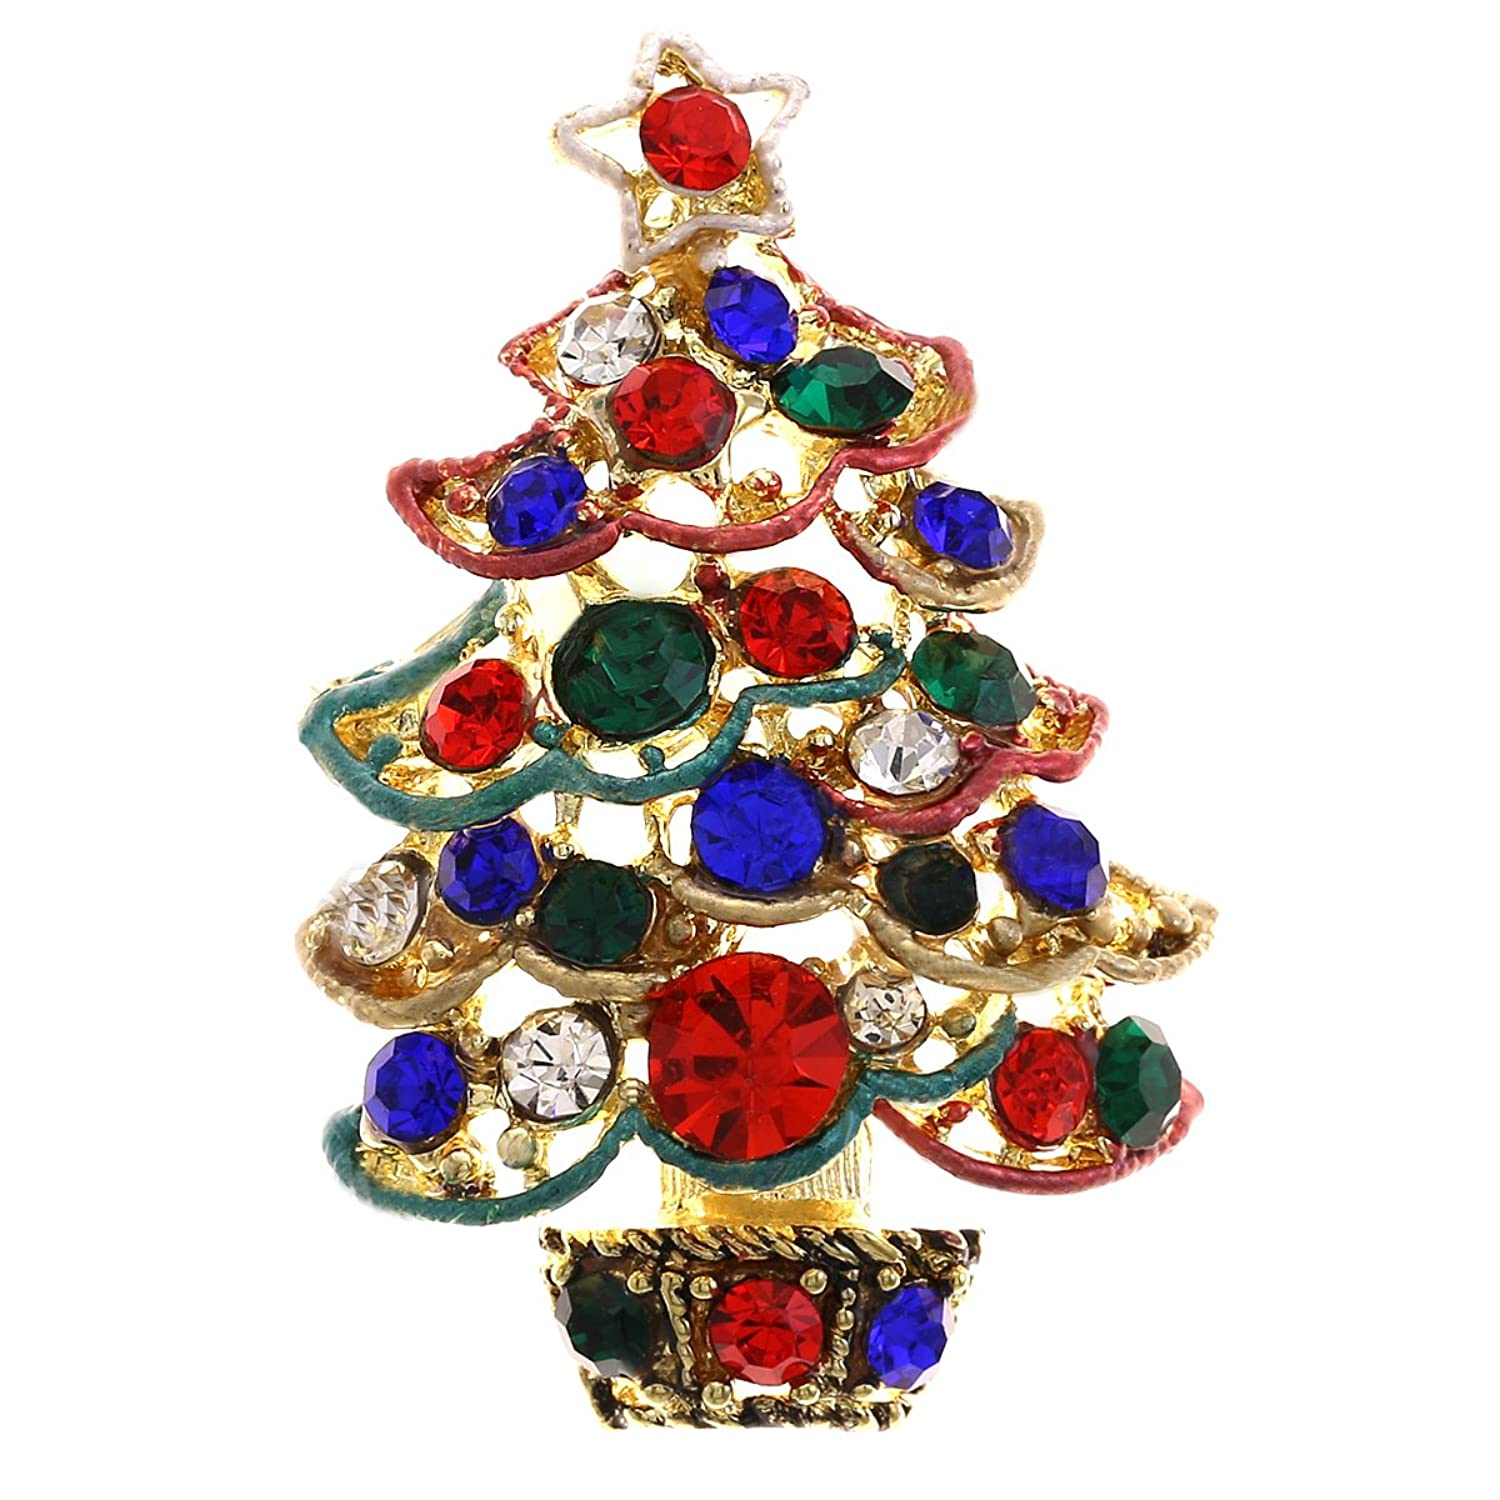 Amazon.com: Soulbreezecollection Christmas Tree Brooch Pin Colorful Lights  U0026 Ornaments Christmas Jewelry: Brooches And Pins: Jewelry